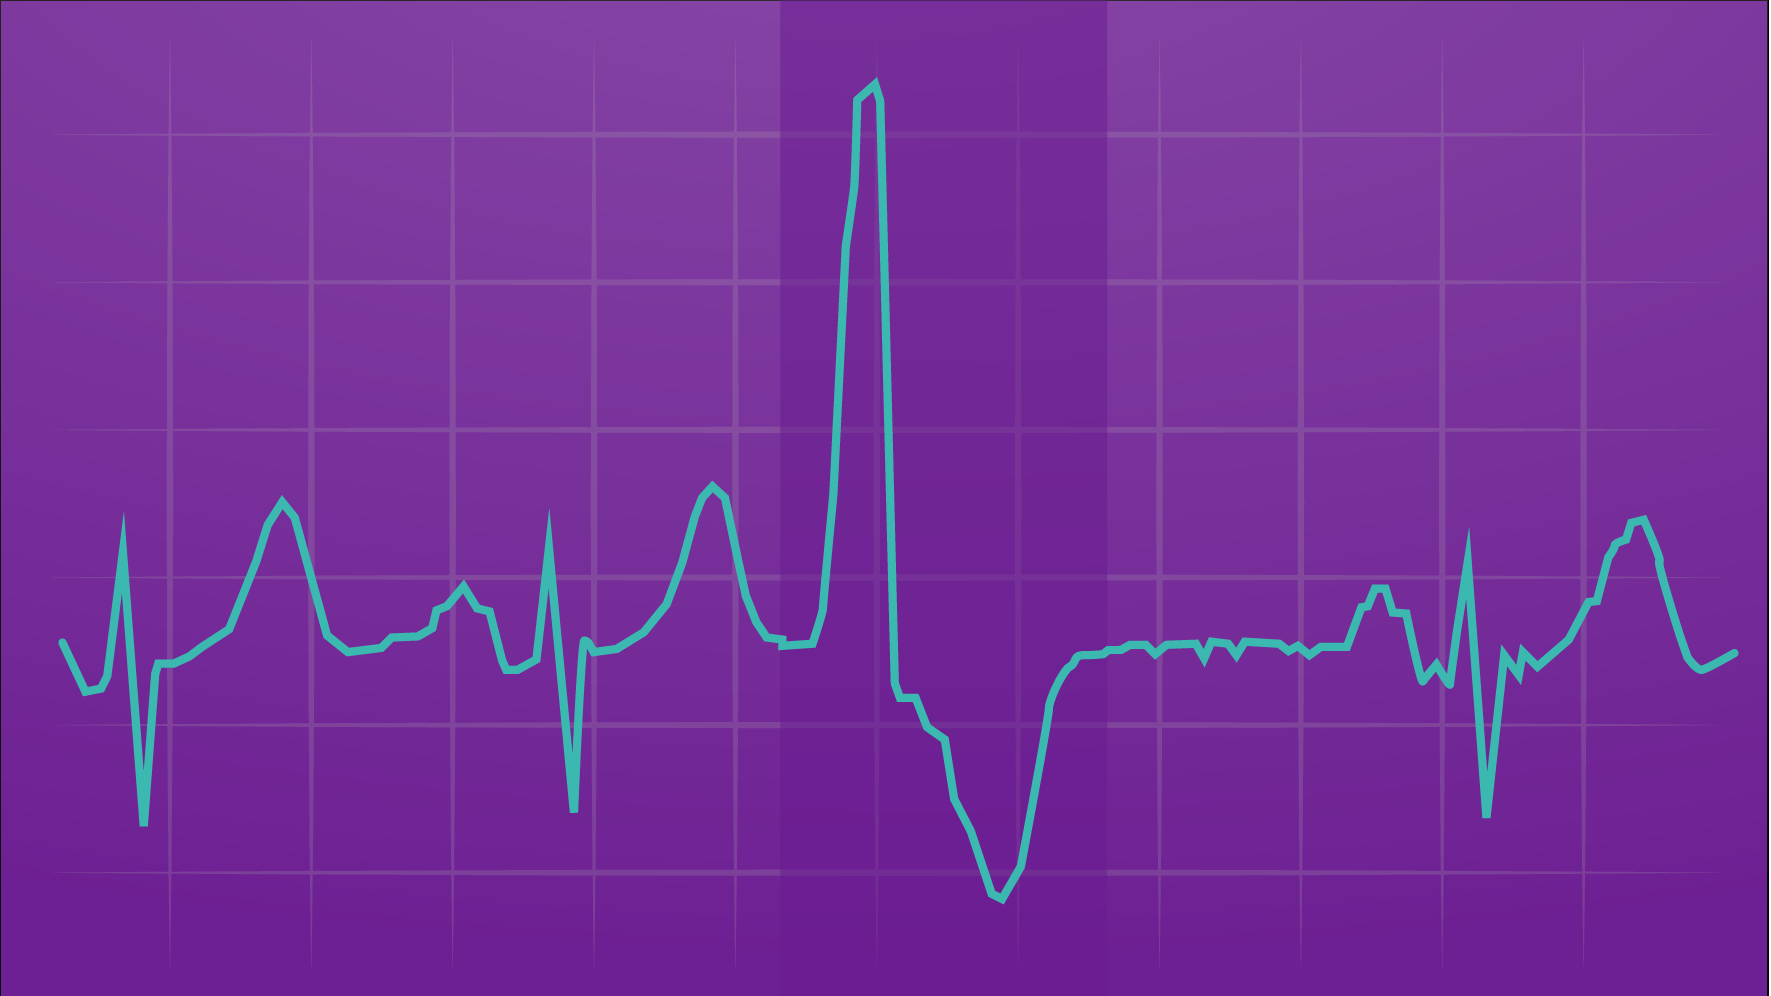 Illustration of an EKG printout showing premature ventricular contractions